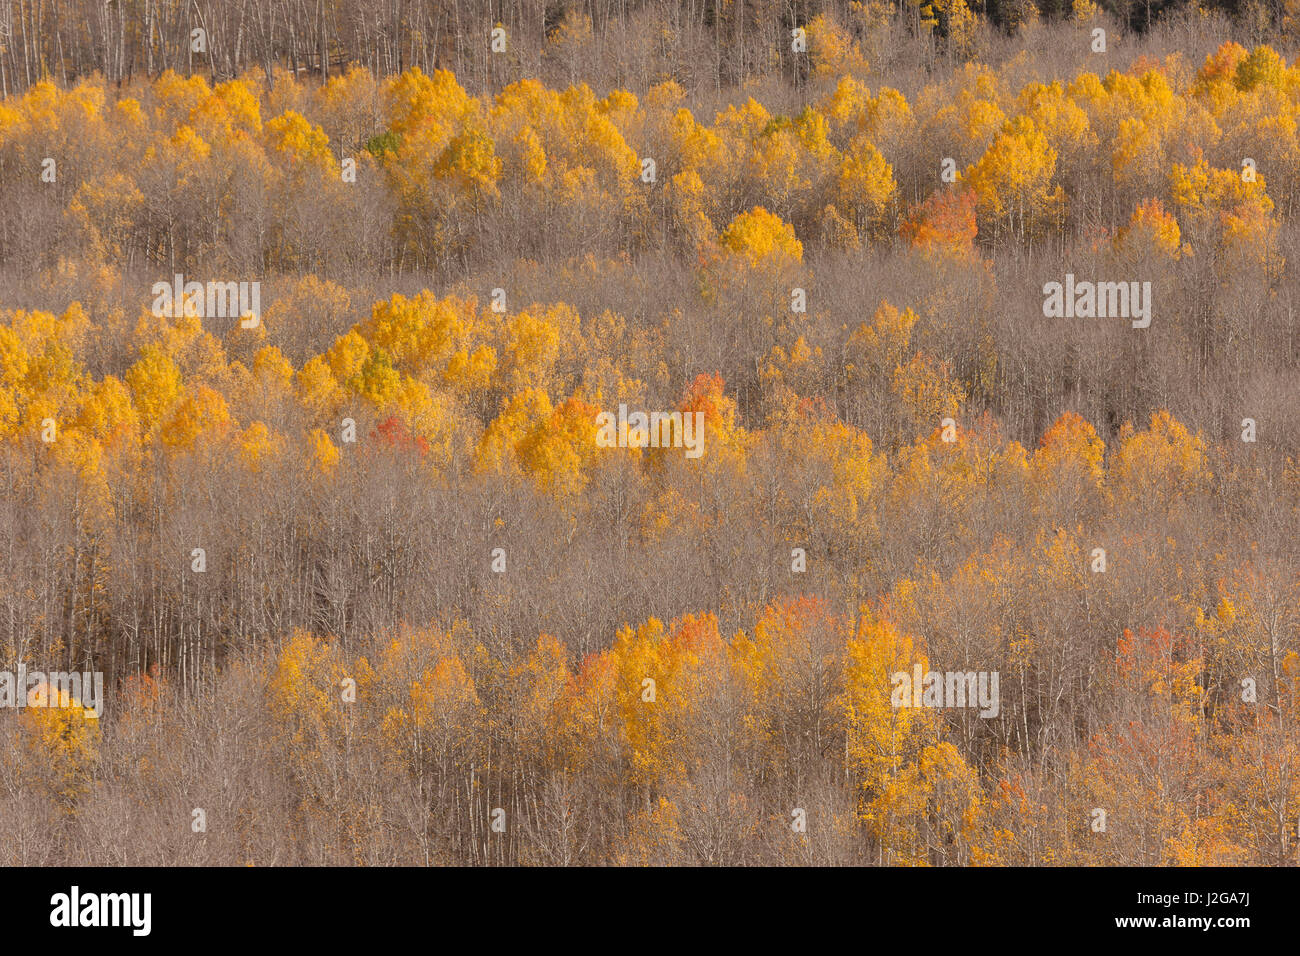 USA, Colorado, Uncompahgre National Forest. Aspen forest in autumn. Credit as: Don Grall / Jaynes Gallery / DanitaDelimont.com - Stock Image